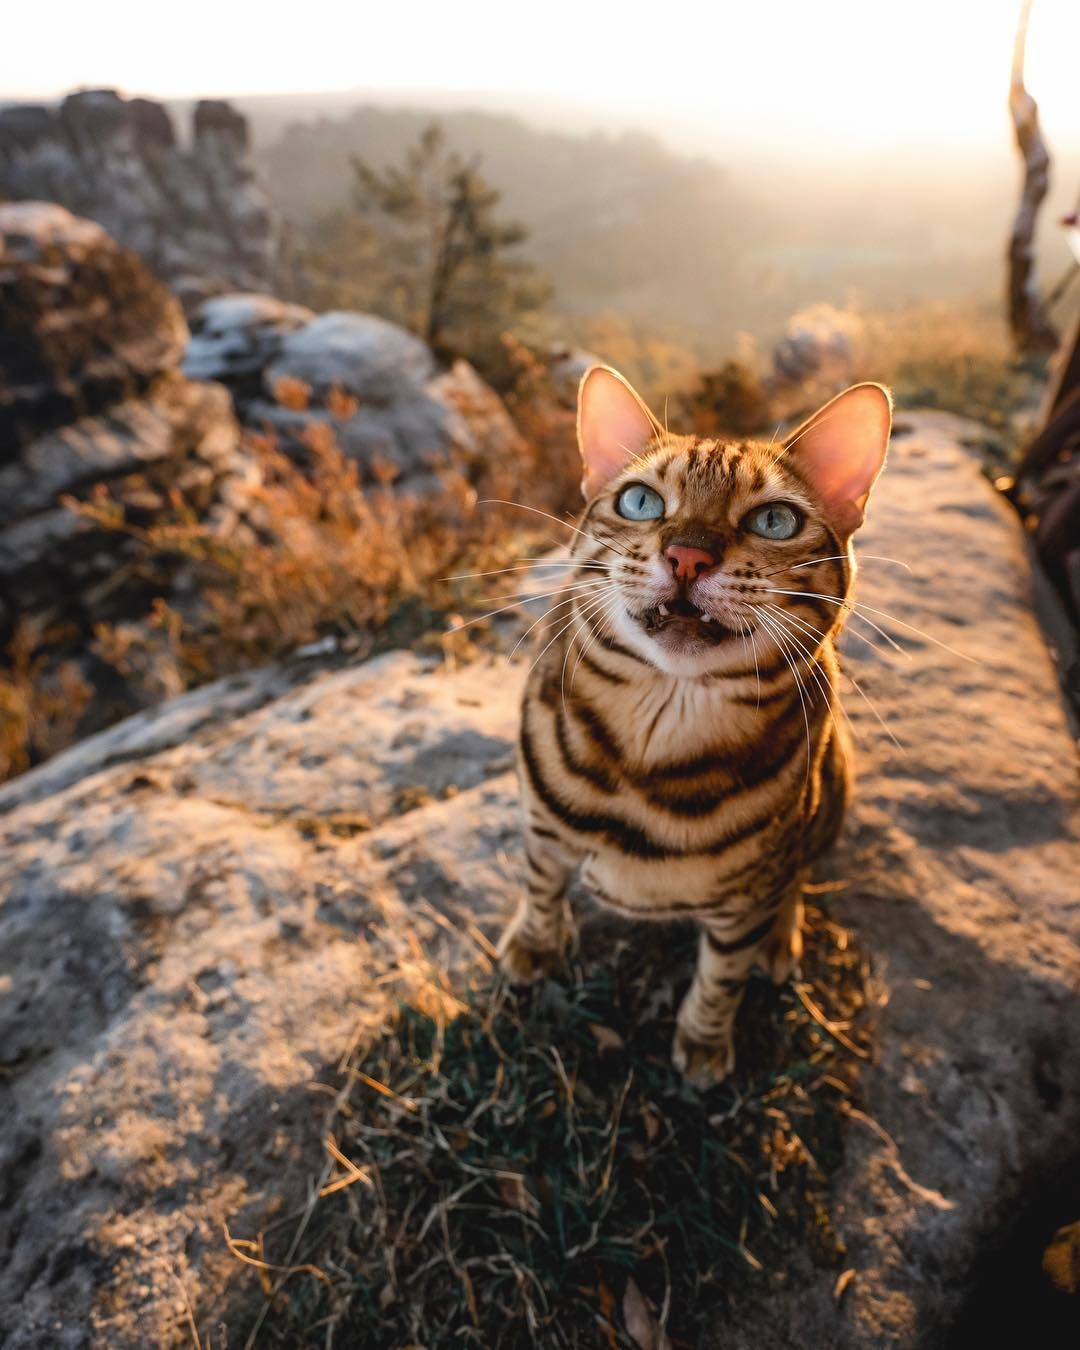 Pin by John Hassemer on AJohnny s List Cats, Adventure